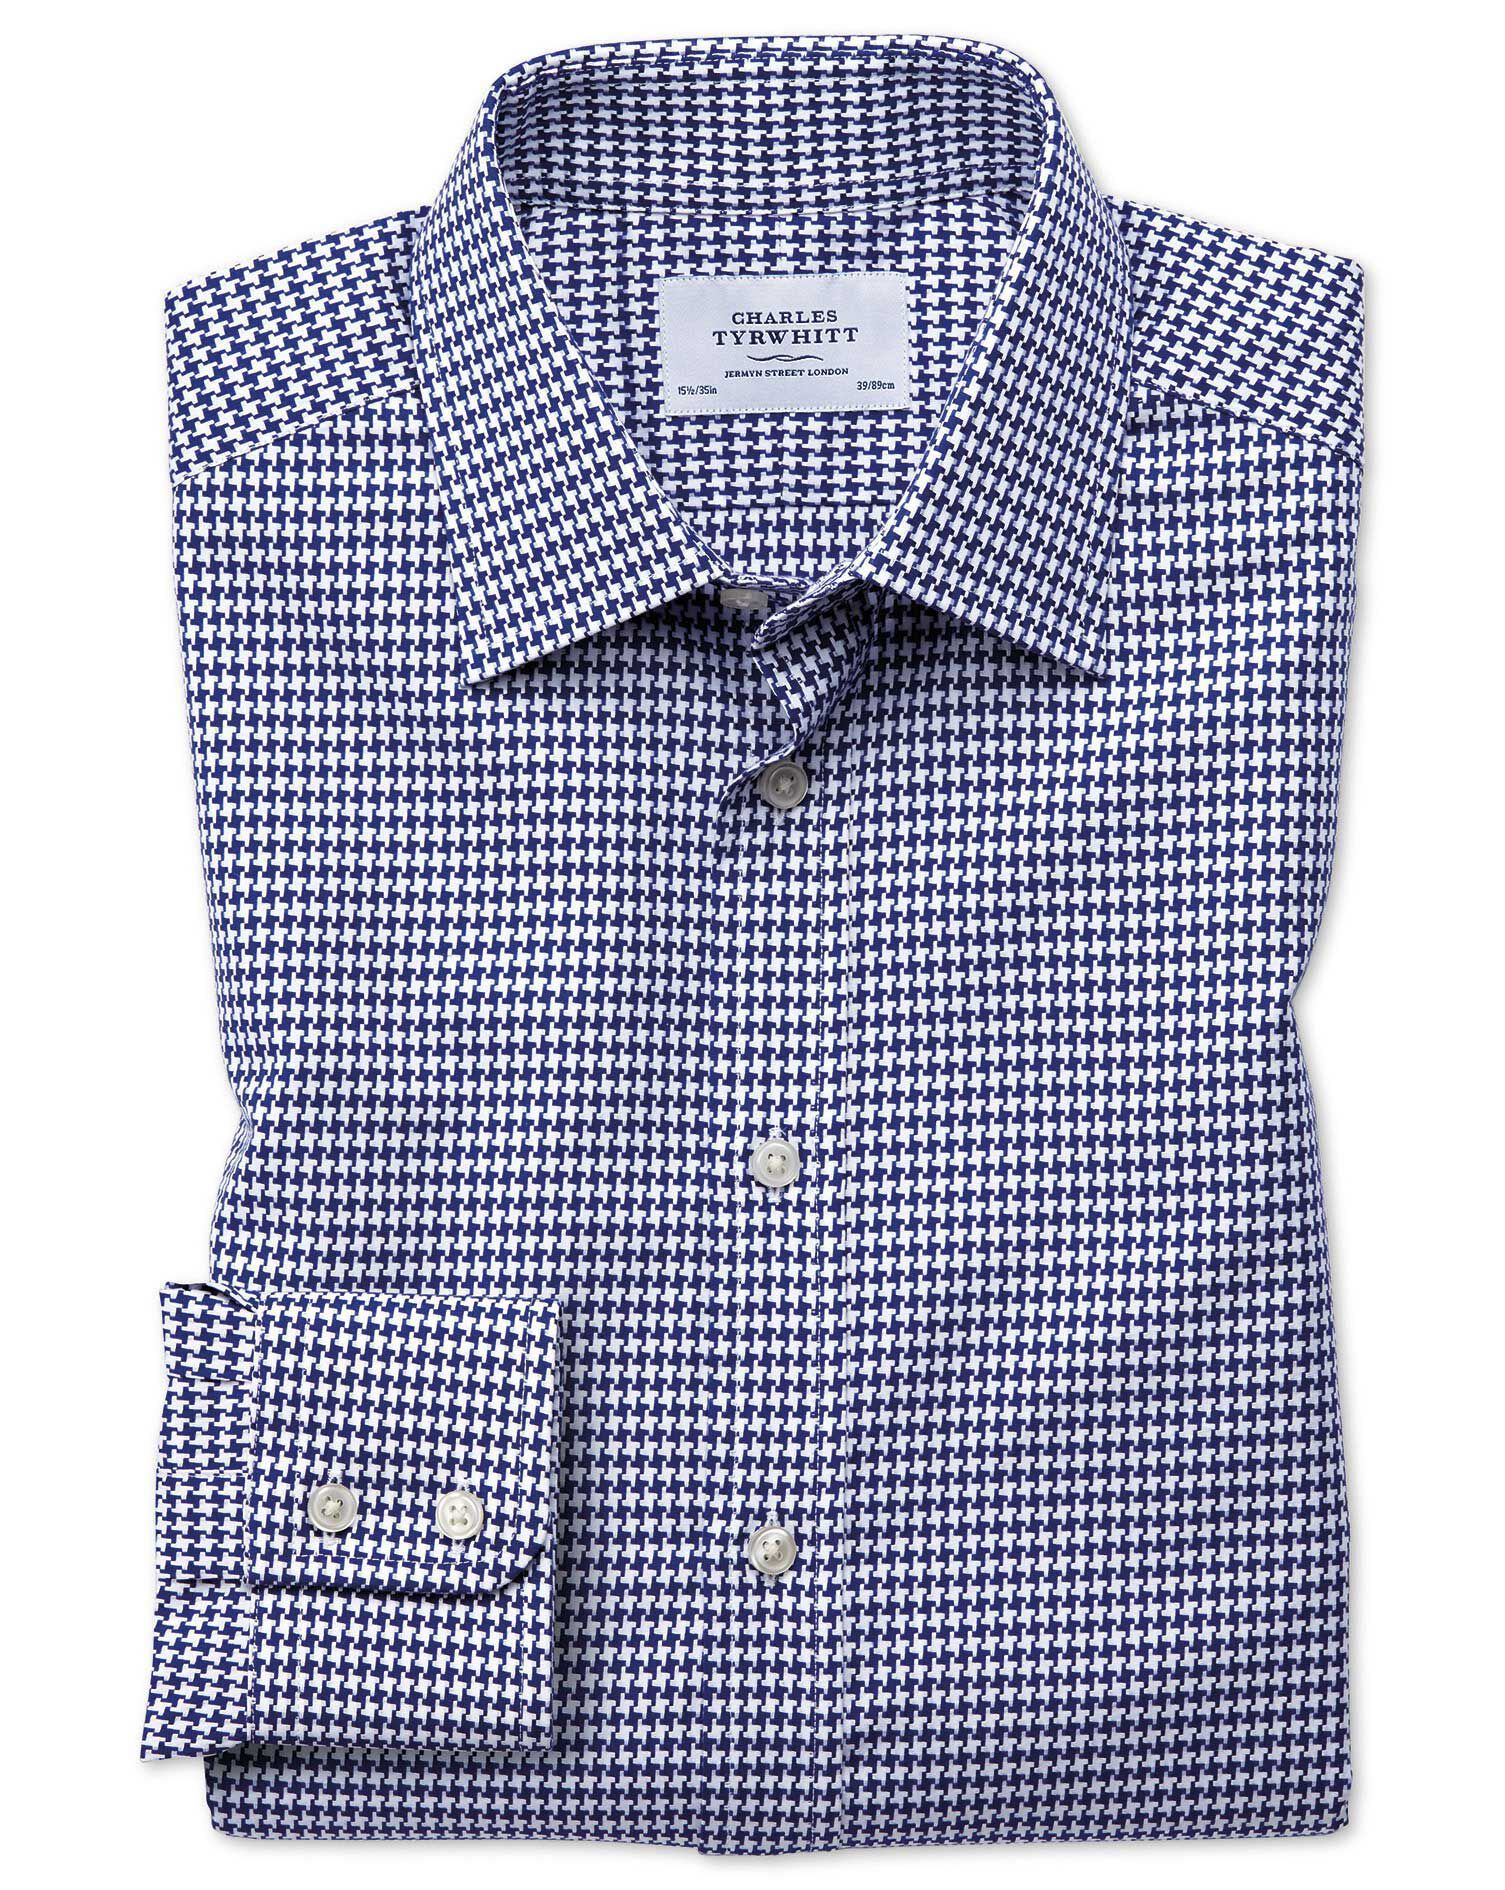 Slim Fit Large Puppytooth Blue Cotton Formal Shirt Single Cuff Size 17/37 by Charles Tyrwhitt